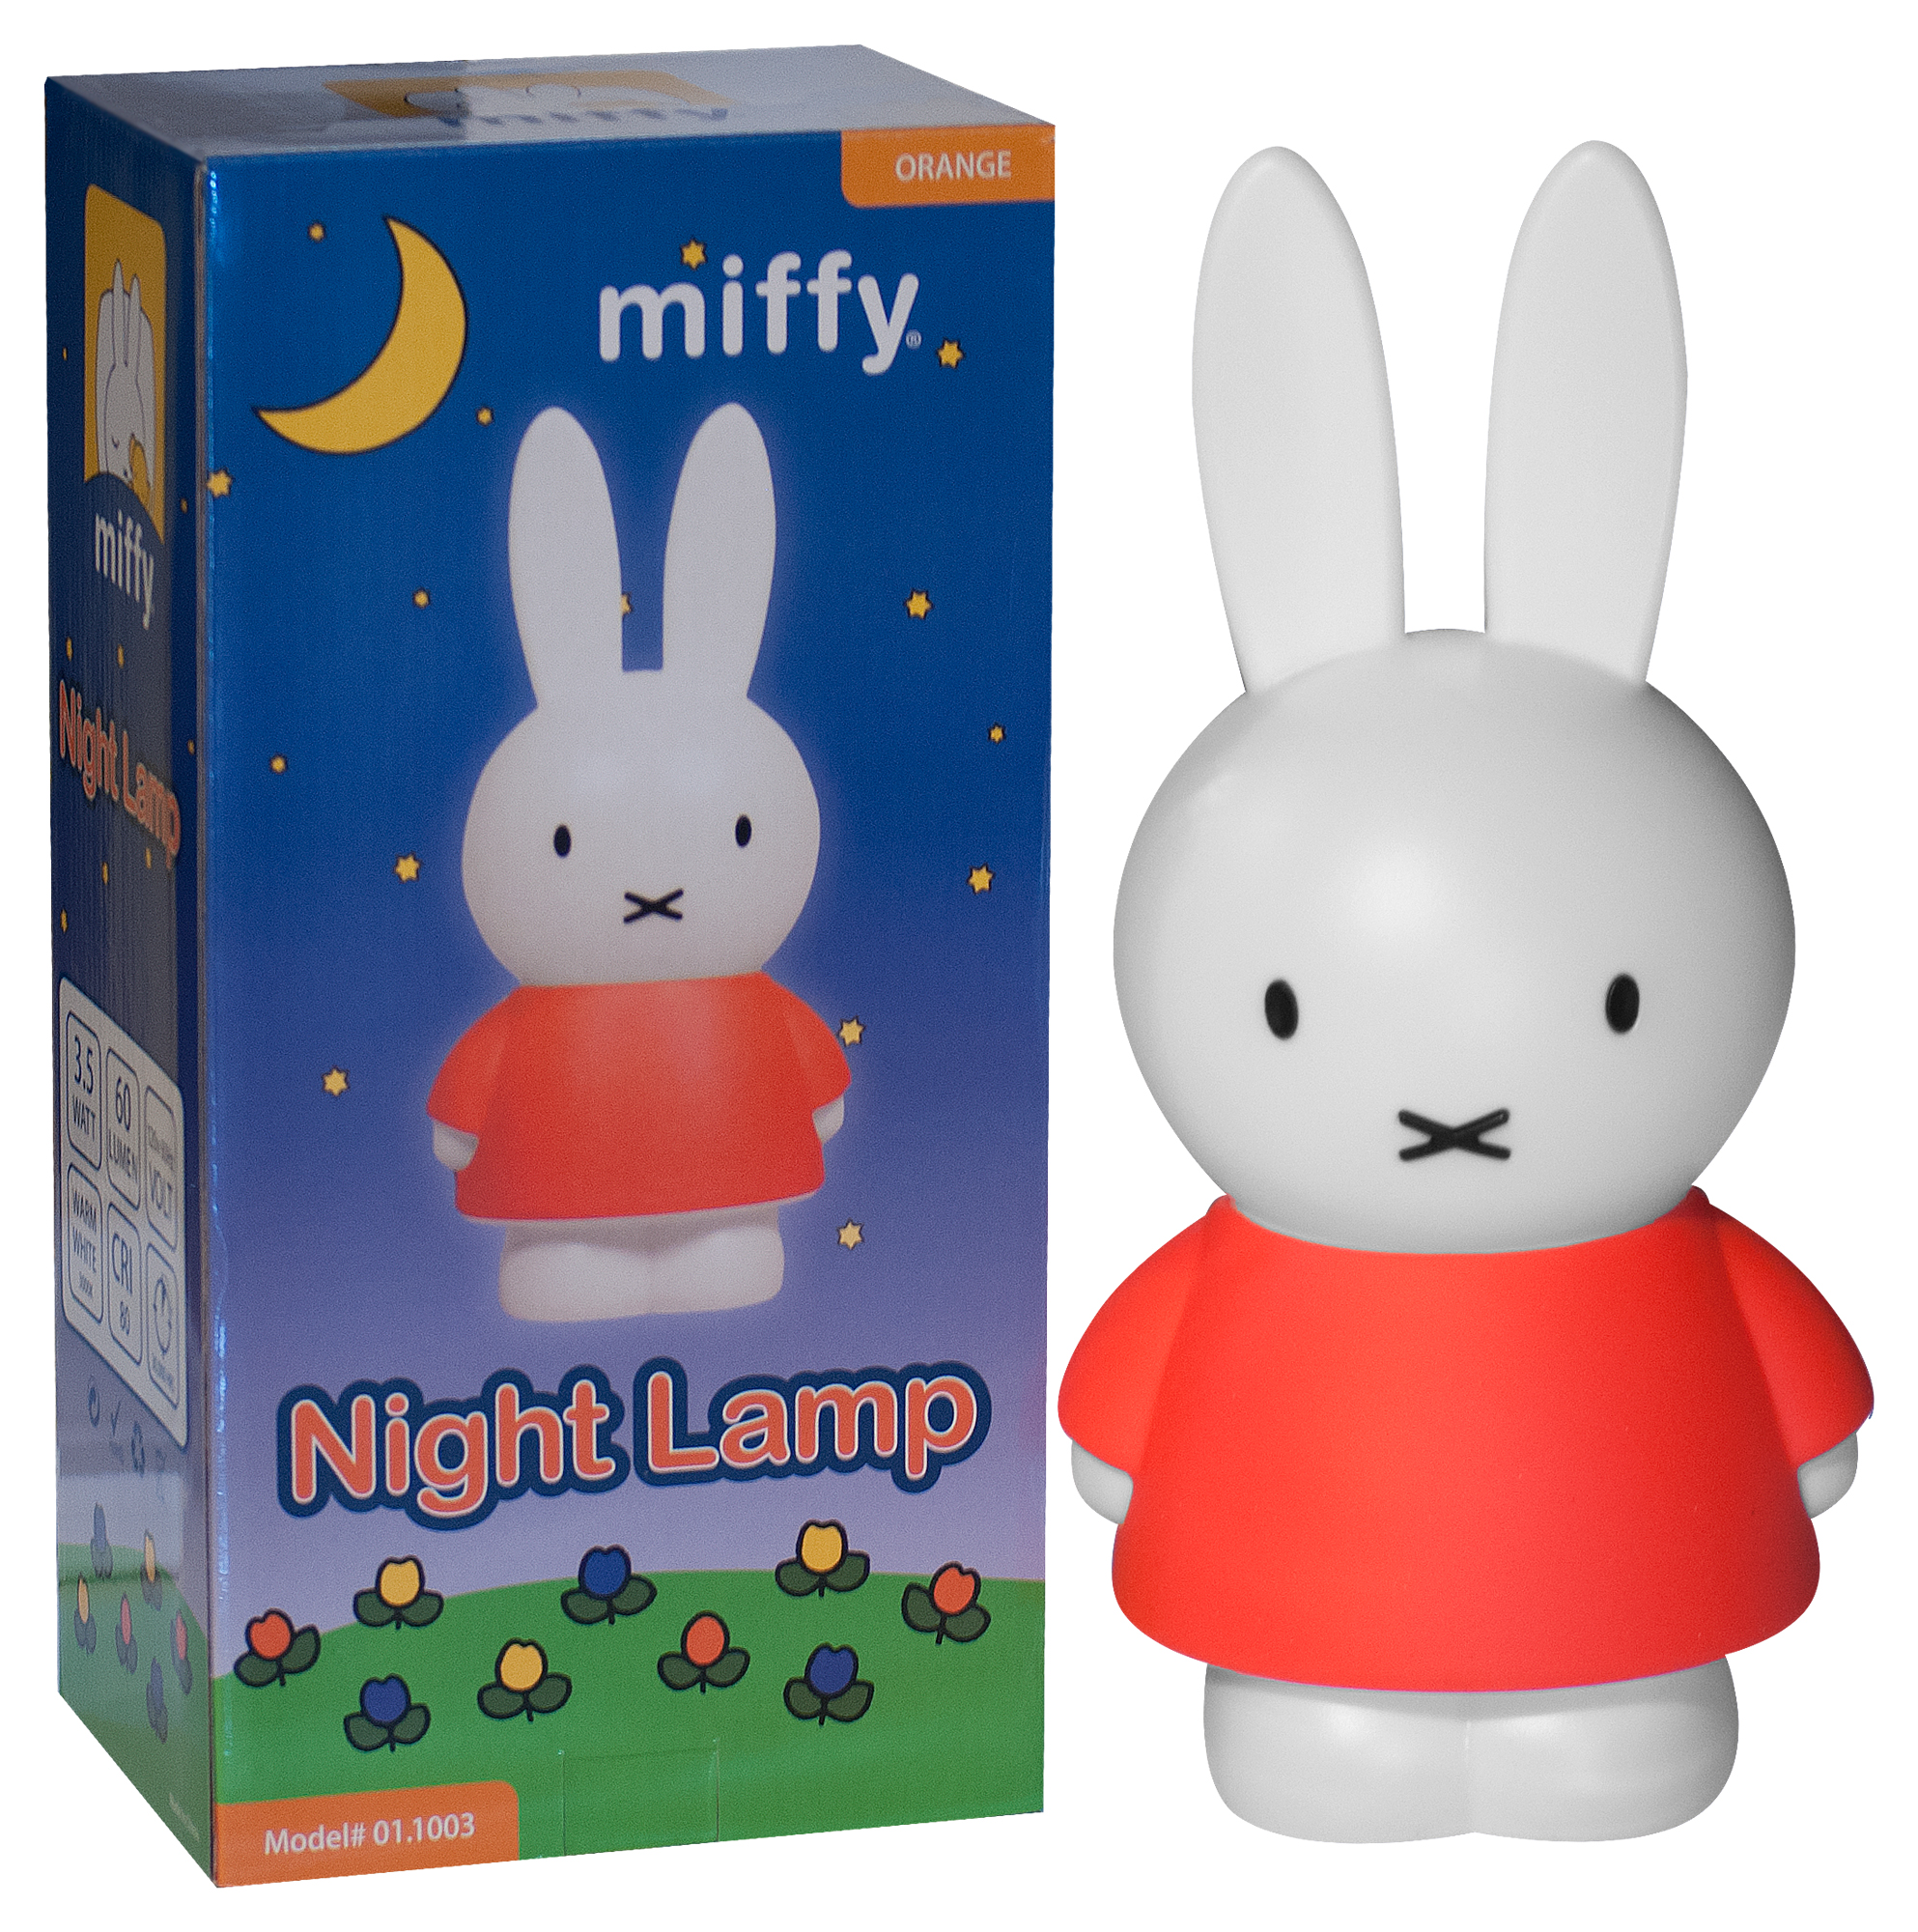 Miffy Lamp | LED Bunny Night Light for Nijntne Boek, Rabbit Lovers, and Kids for Sweet Dreams with Miffy,... by Miffy